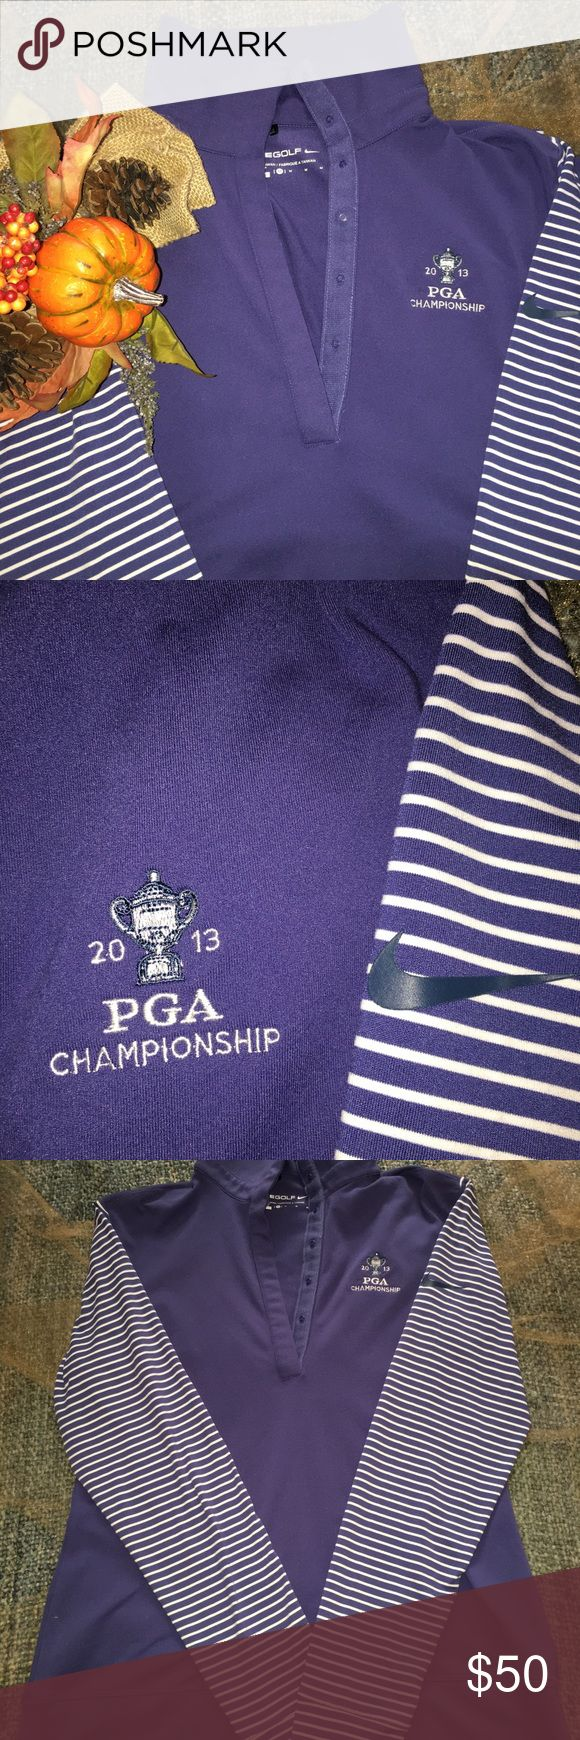 Nike Golf Dri-fit 2013 PGA Championship Size M Limited Edition Ladies Nike Golf long sleeve Dri-fit shirt from the 2013 PGA Championship ⛳️ size M. Made of 88% Polyester and 12% Spandex. The camera has the color coming out as more purple but it is really a classic pale navy. Nike fits snugly. Measurements when laid flat are                  💠 length : 24 inches from shoulder to bottom hem 💠sleeve: 30 inches from neck to sleeve hem                💠width 18 inches between armpit hems. Tops…